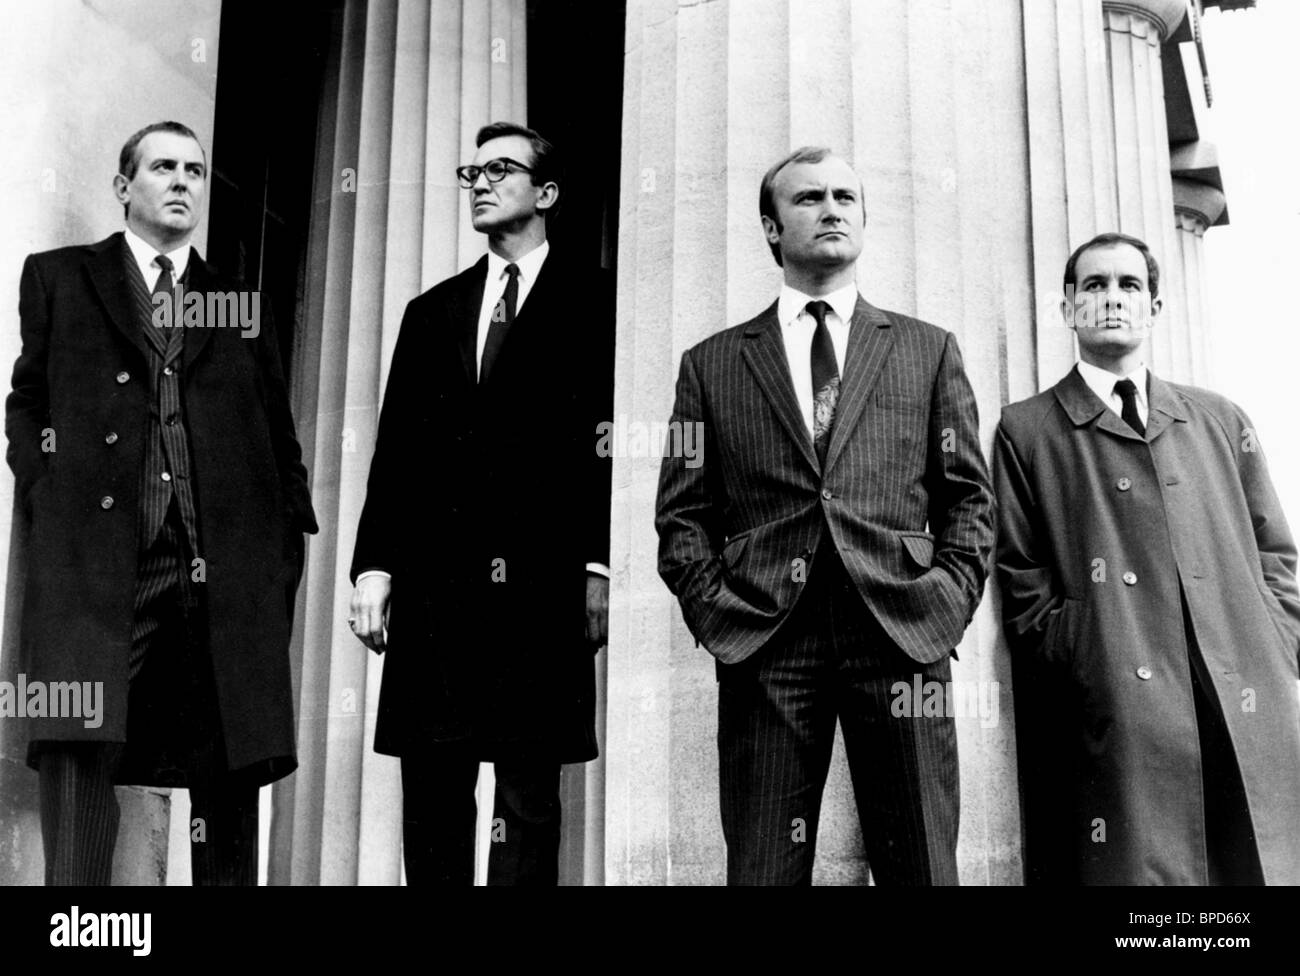 MICHAEL ATTWELL LARRY LAMB PHIL COLLINS & RALPH BROWN BUSTER (1988) - Stock Image